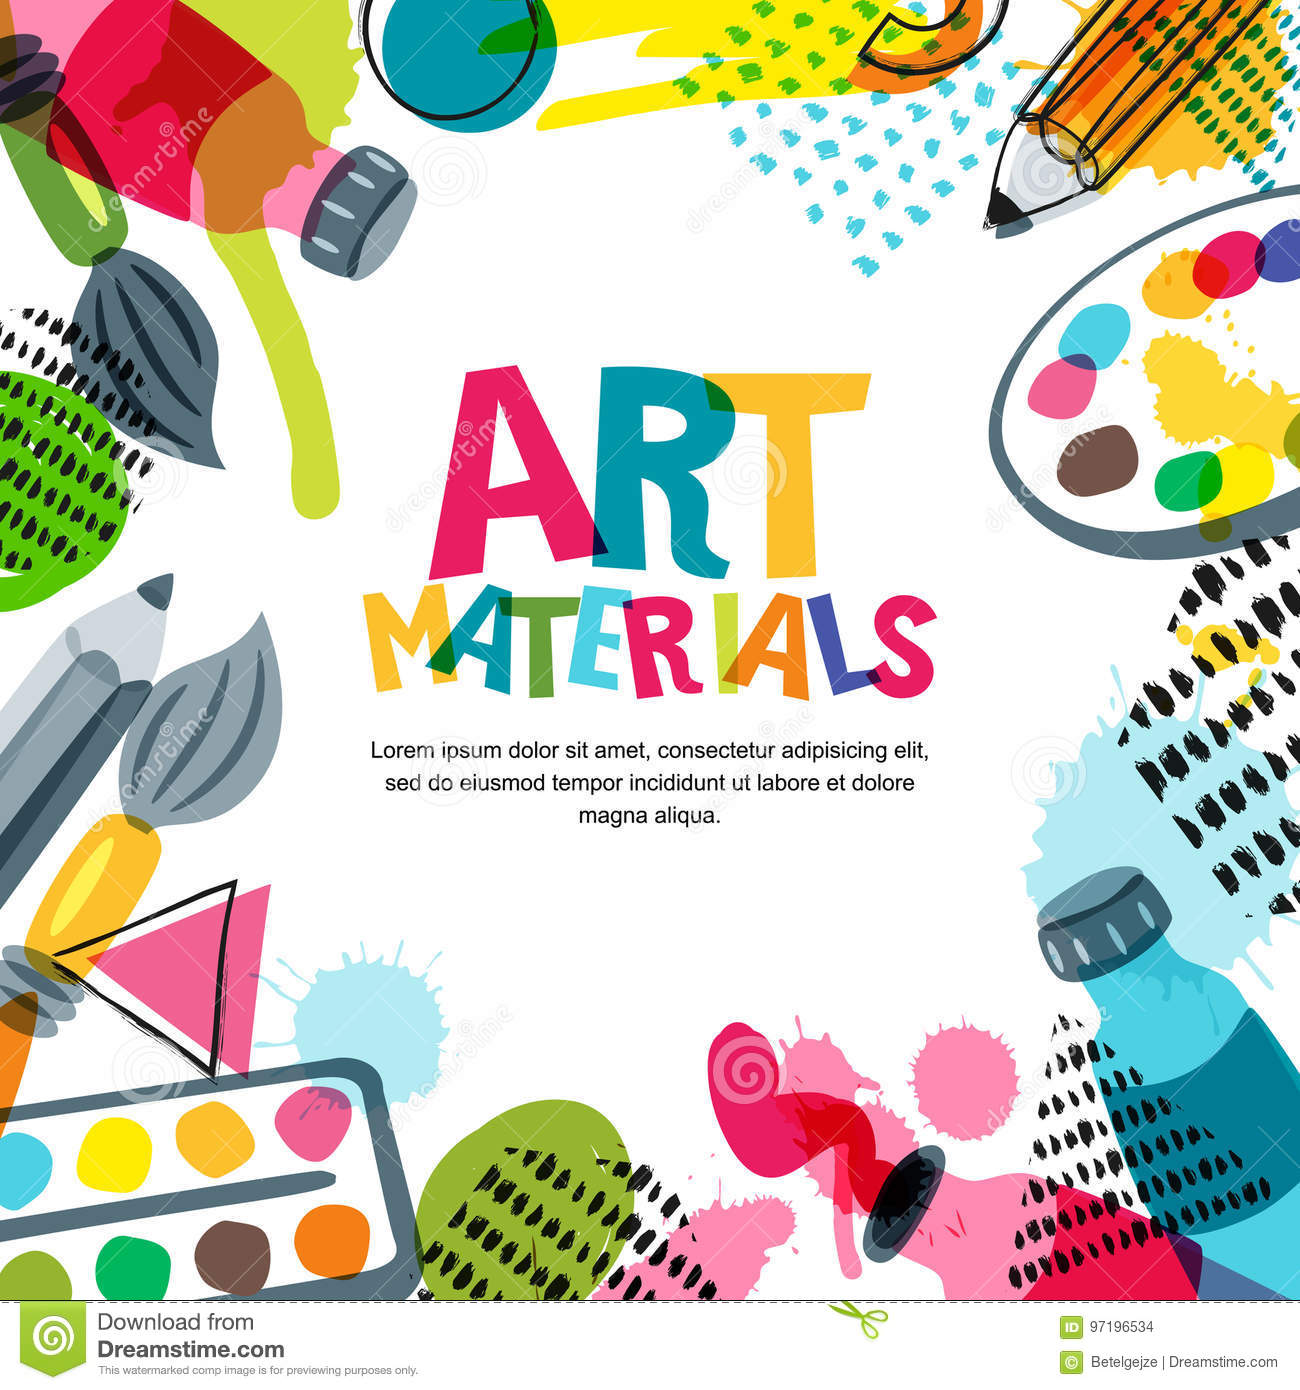 d64b91e8cc69 Art materials for design and creativity. Vector doodle illustration.  Banner, poster or frame background.